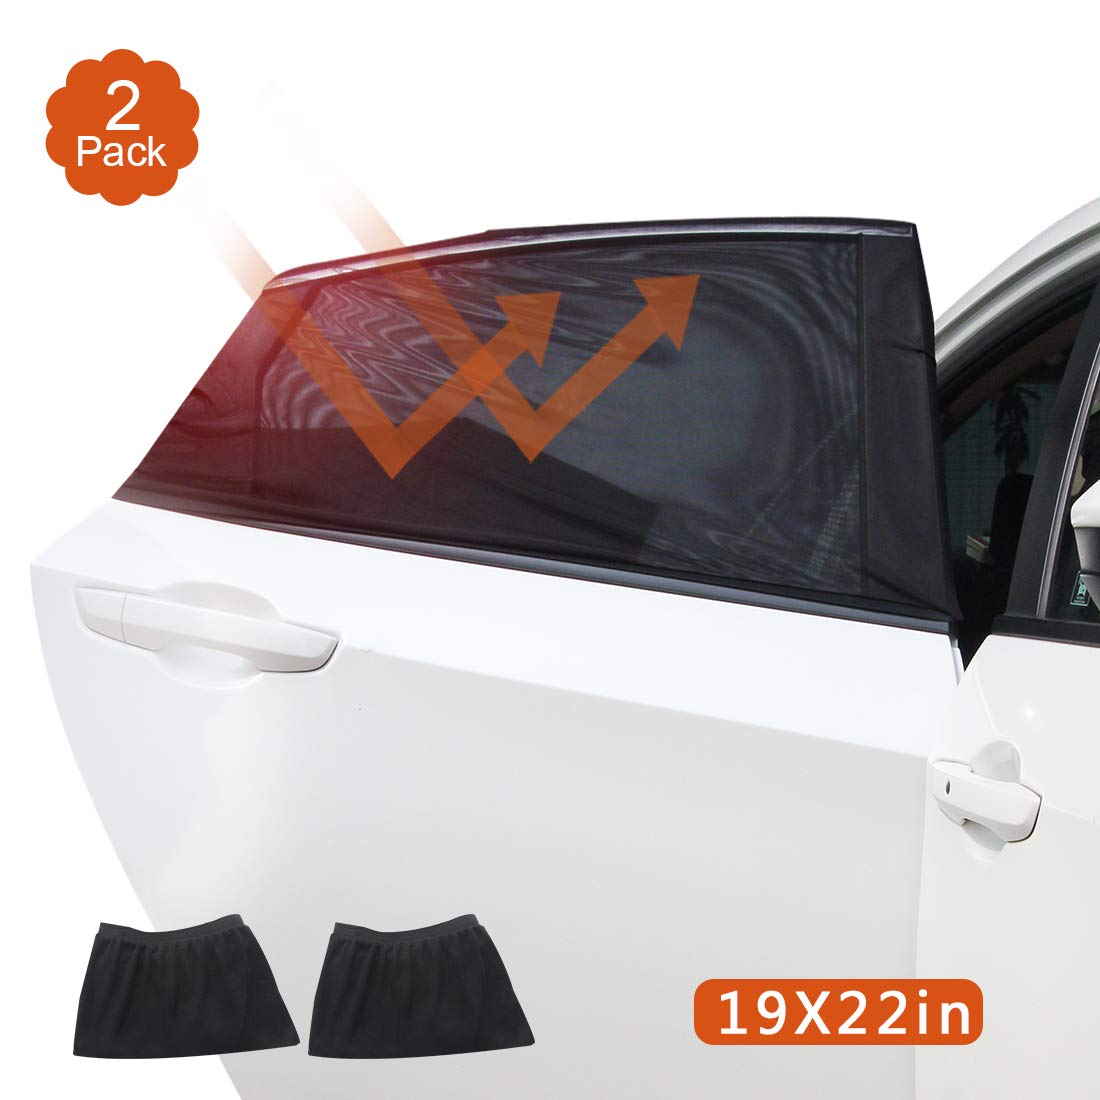 Car Sun Shade Car Window Sun Shade Pack of 2 Self-Adhesive Sun Visors for Side Windows Baby Car Rear Window Sun Visors with UV Protection//Anti-Glare Protection Suitable for Cars and SUVs